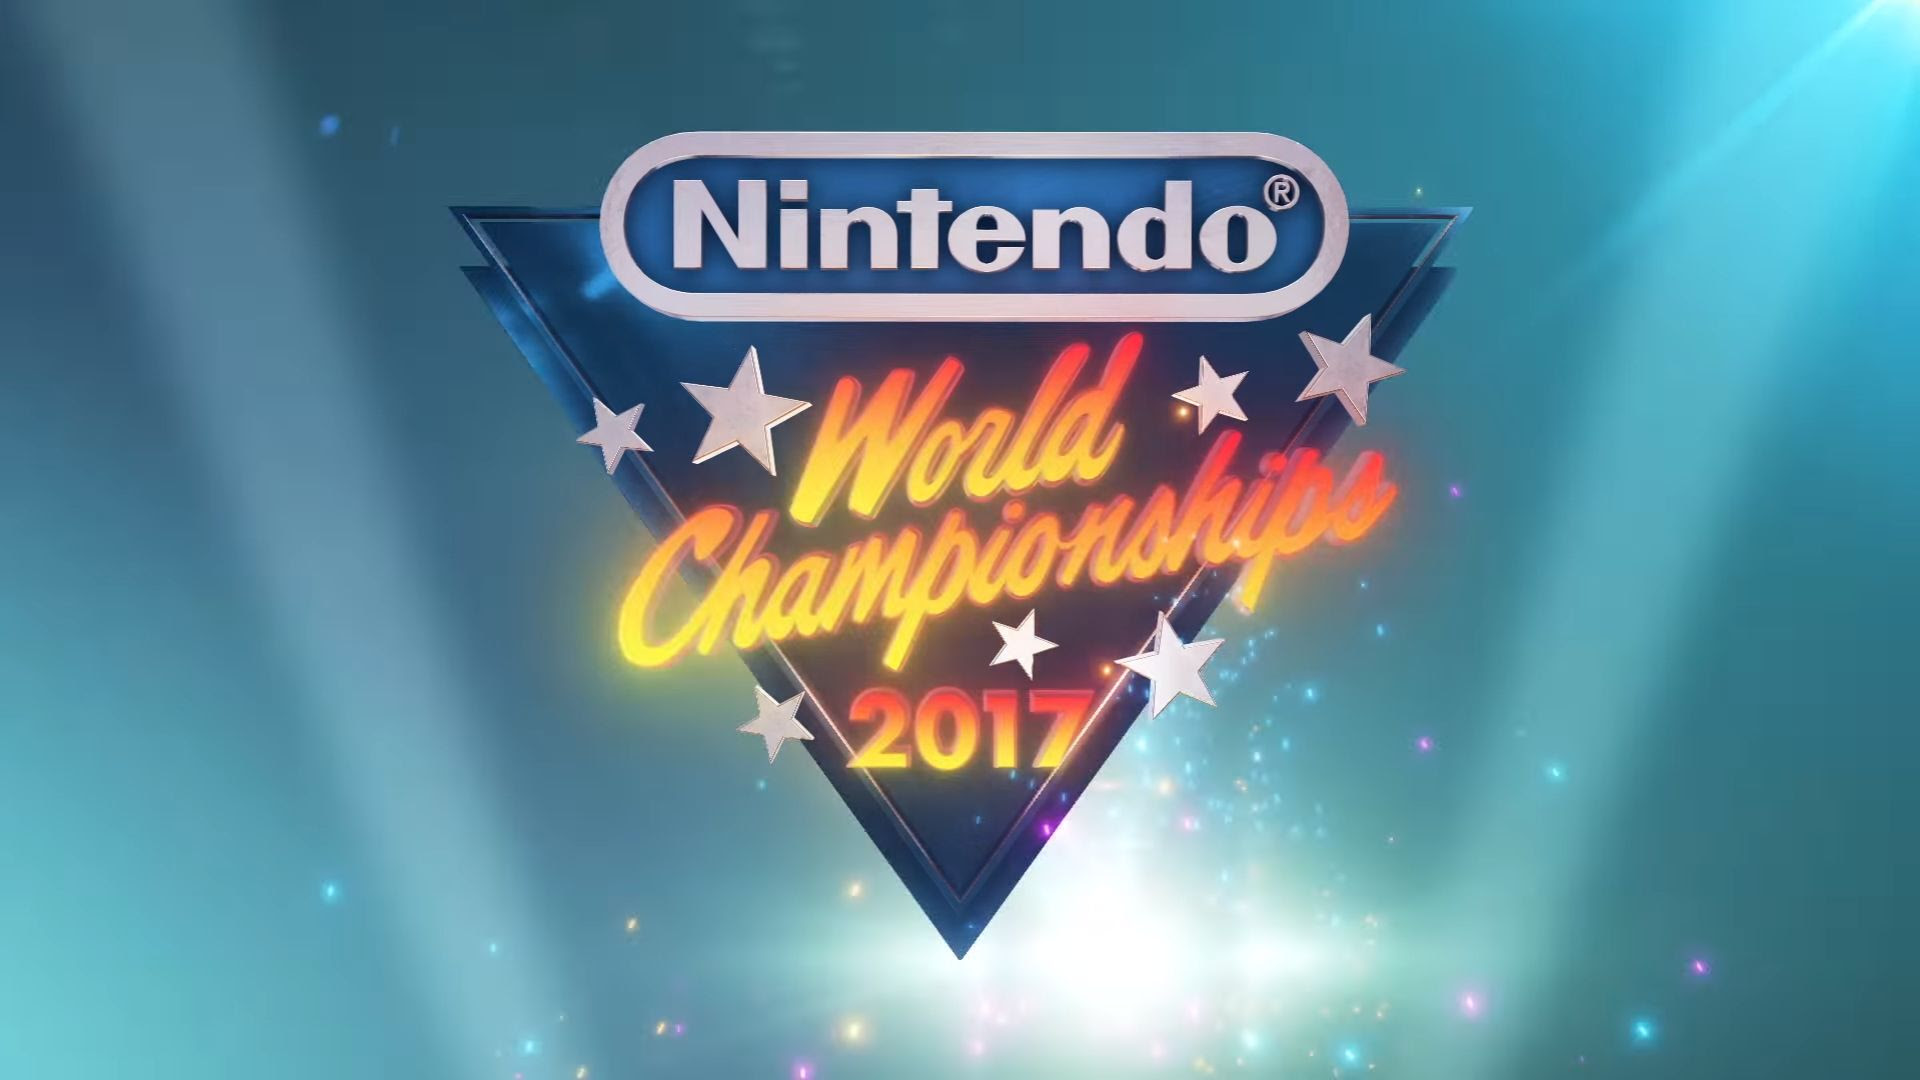 Nintendo World Championships 2017 coming to New York this October screenshot